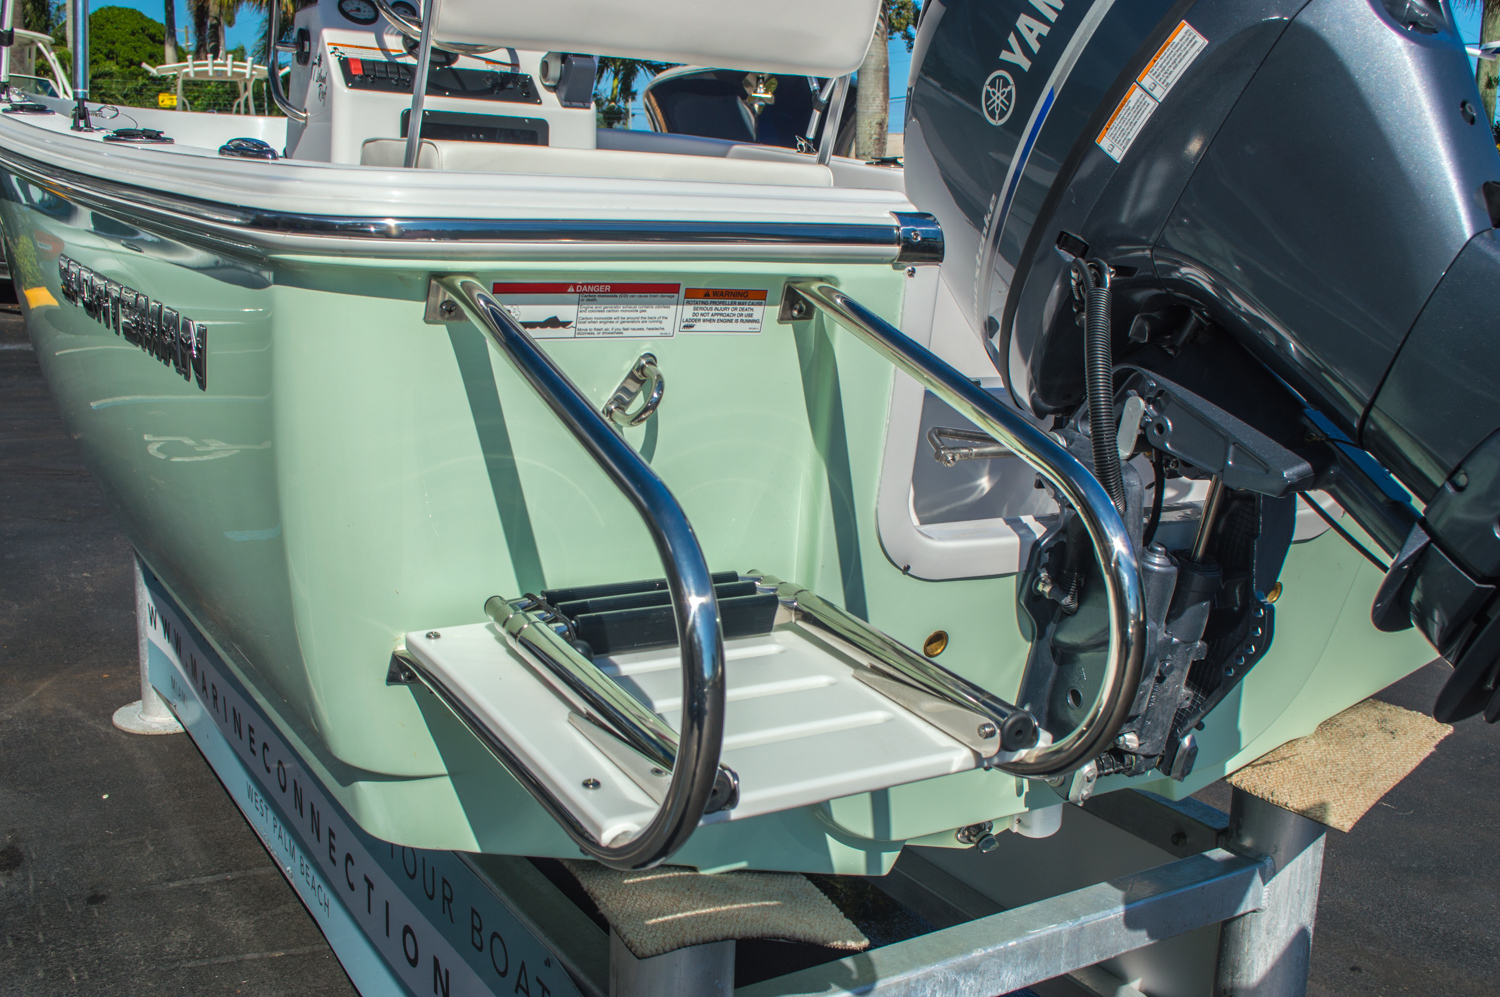 Thumbnail 9 for New 2016 Sportsman 17 Island Reef boat for sale in West Palm Beach, FL